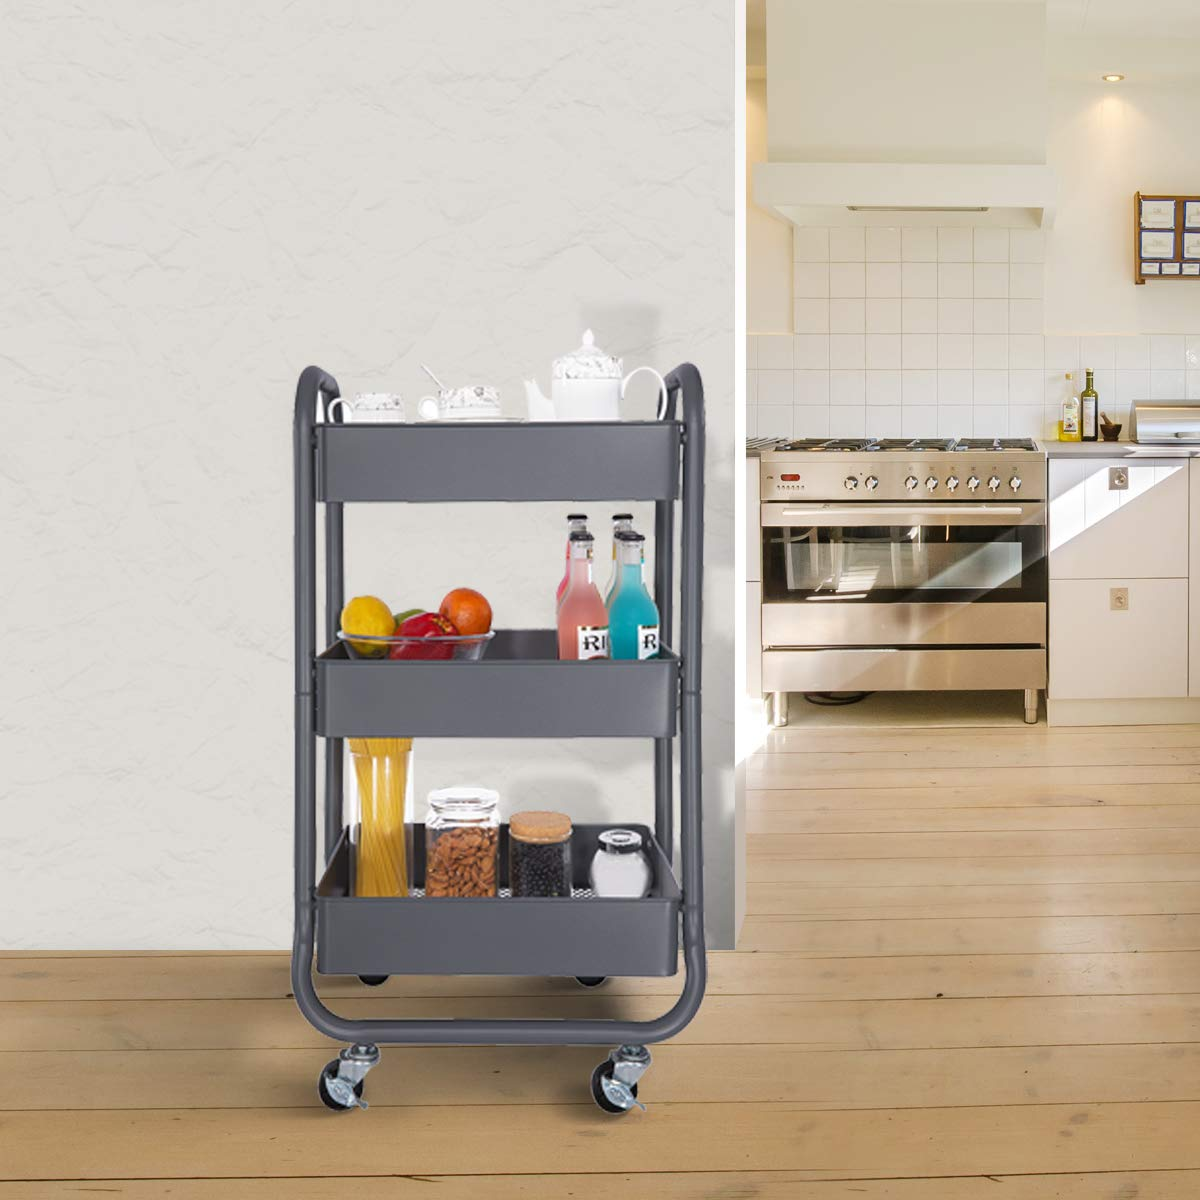 DESIGNA Metal Rolling Storage Cart 3 Tiers Utility Mobile Organization Cart with Handles Suitable for Office Home Kitchen or Outdoor, Gray by DESIGNA (Image #3)